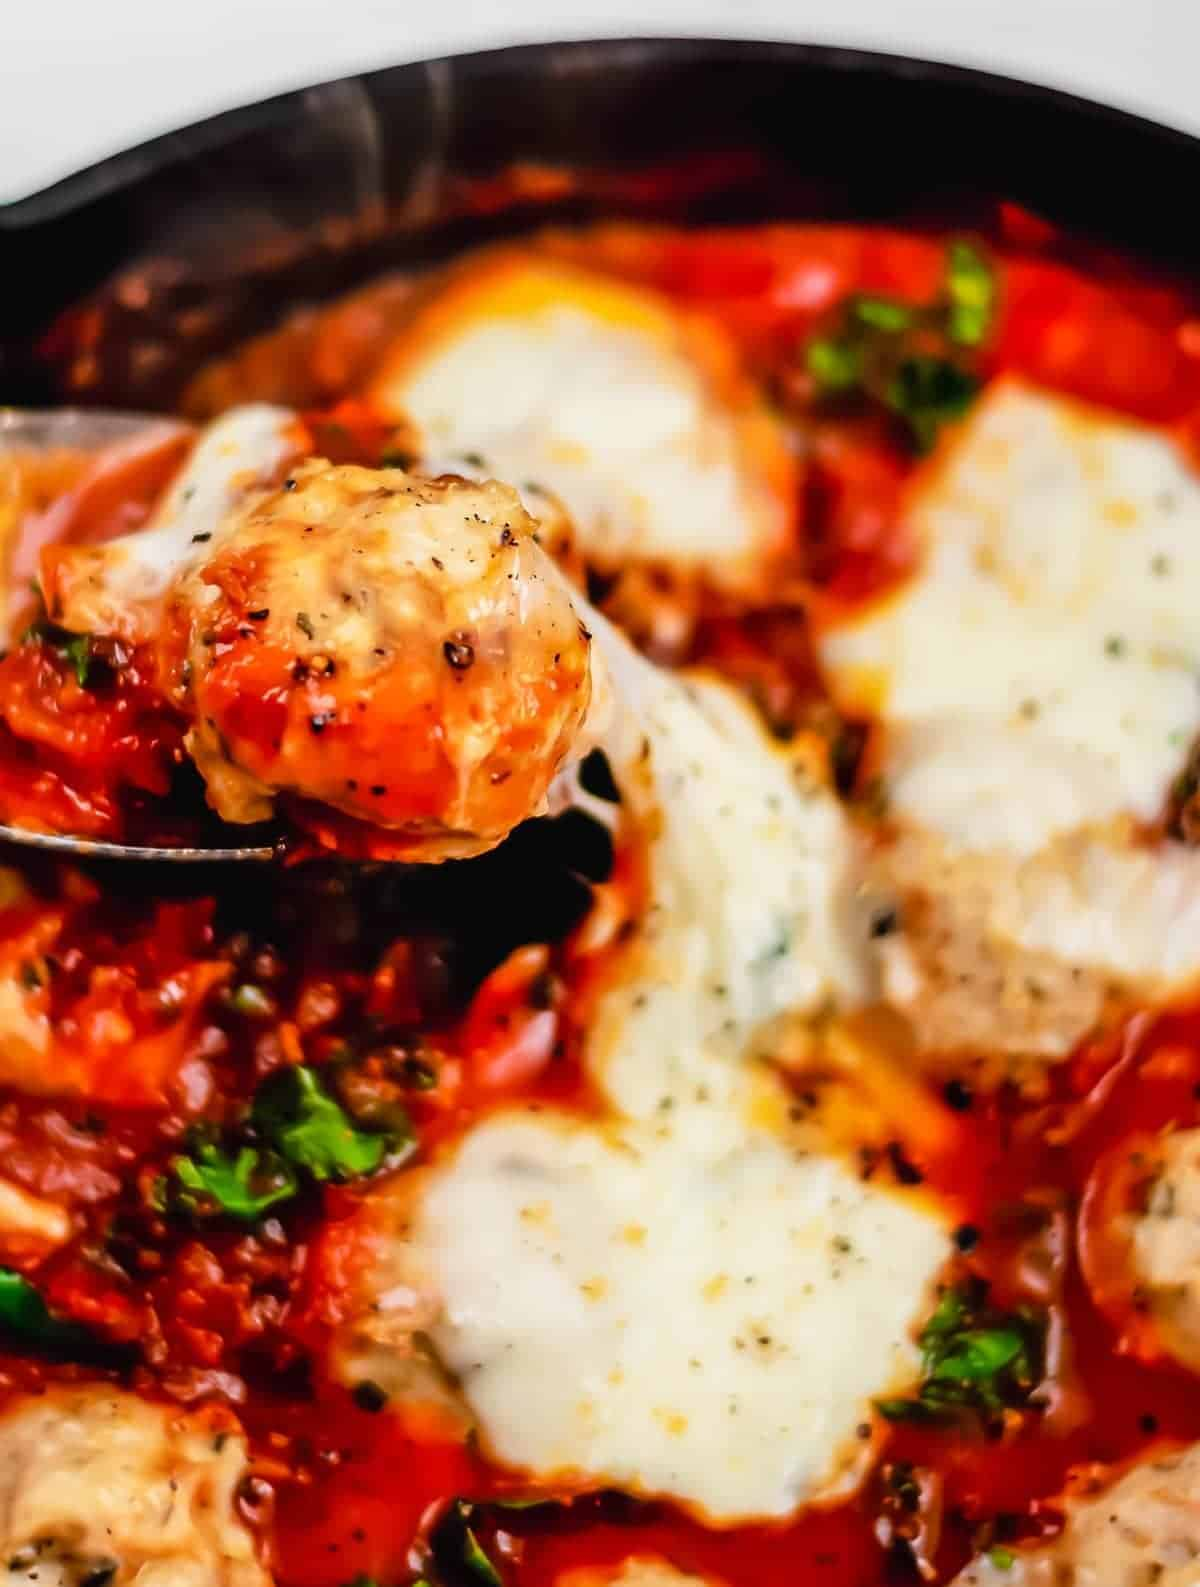 Italian Baked Chicken Meatballs are my favorite easy and amazing Chicken Meatballs Recipe. This recipe for Spicy Italian Chicken Meatballs brings you straight to Italy with soft meatballs, rich sauce, and ooey-gooey cheese.